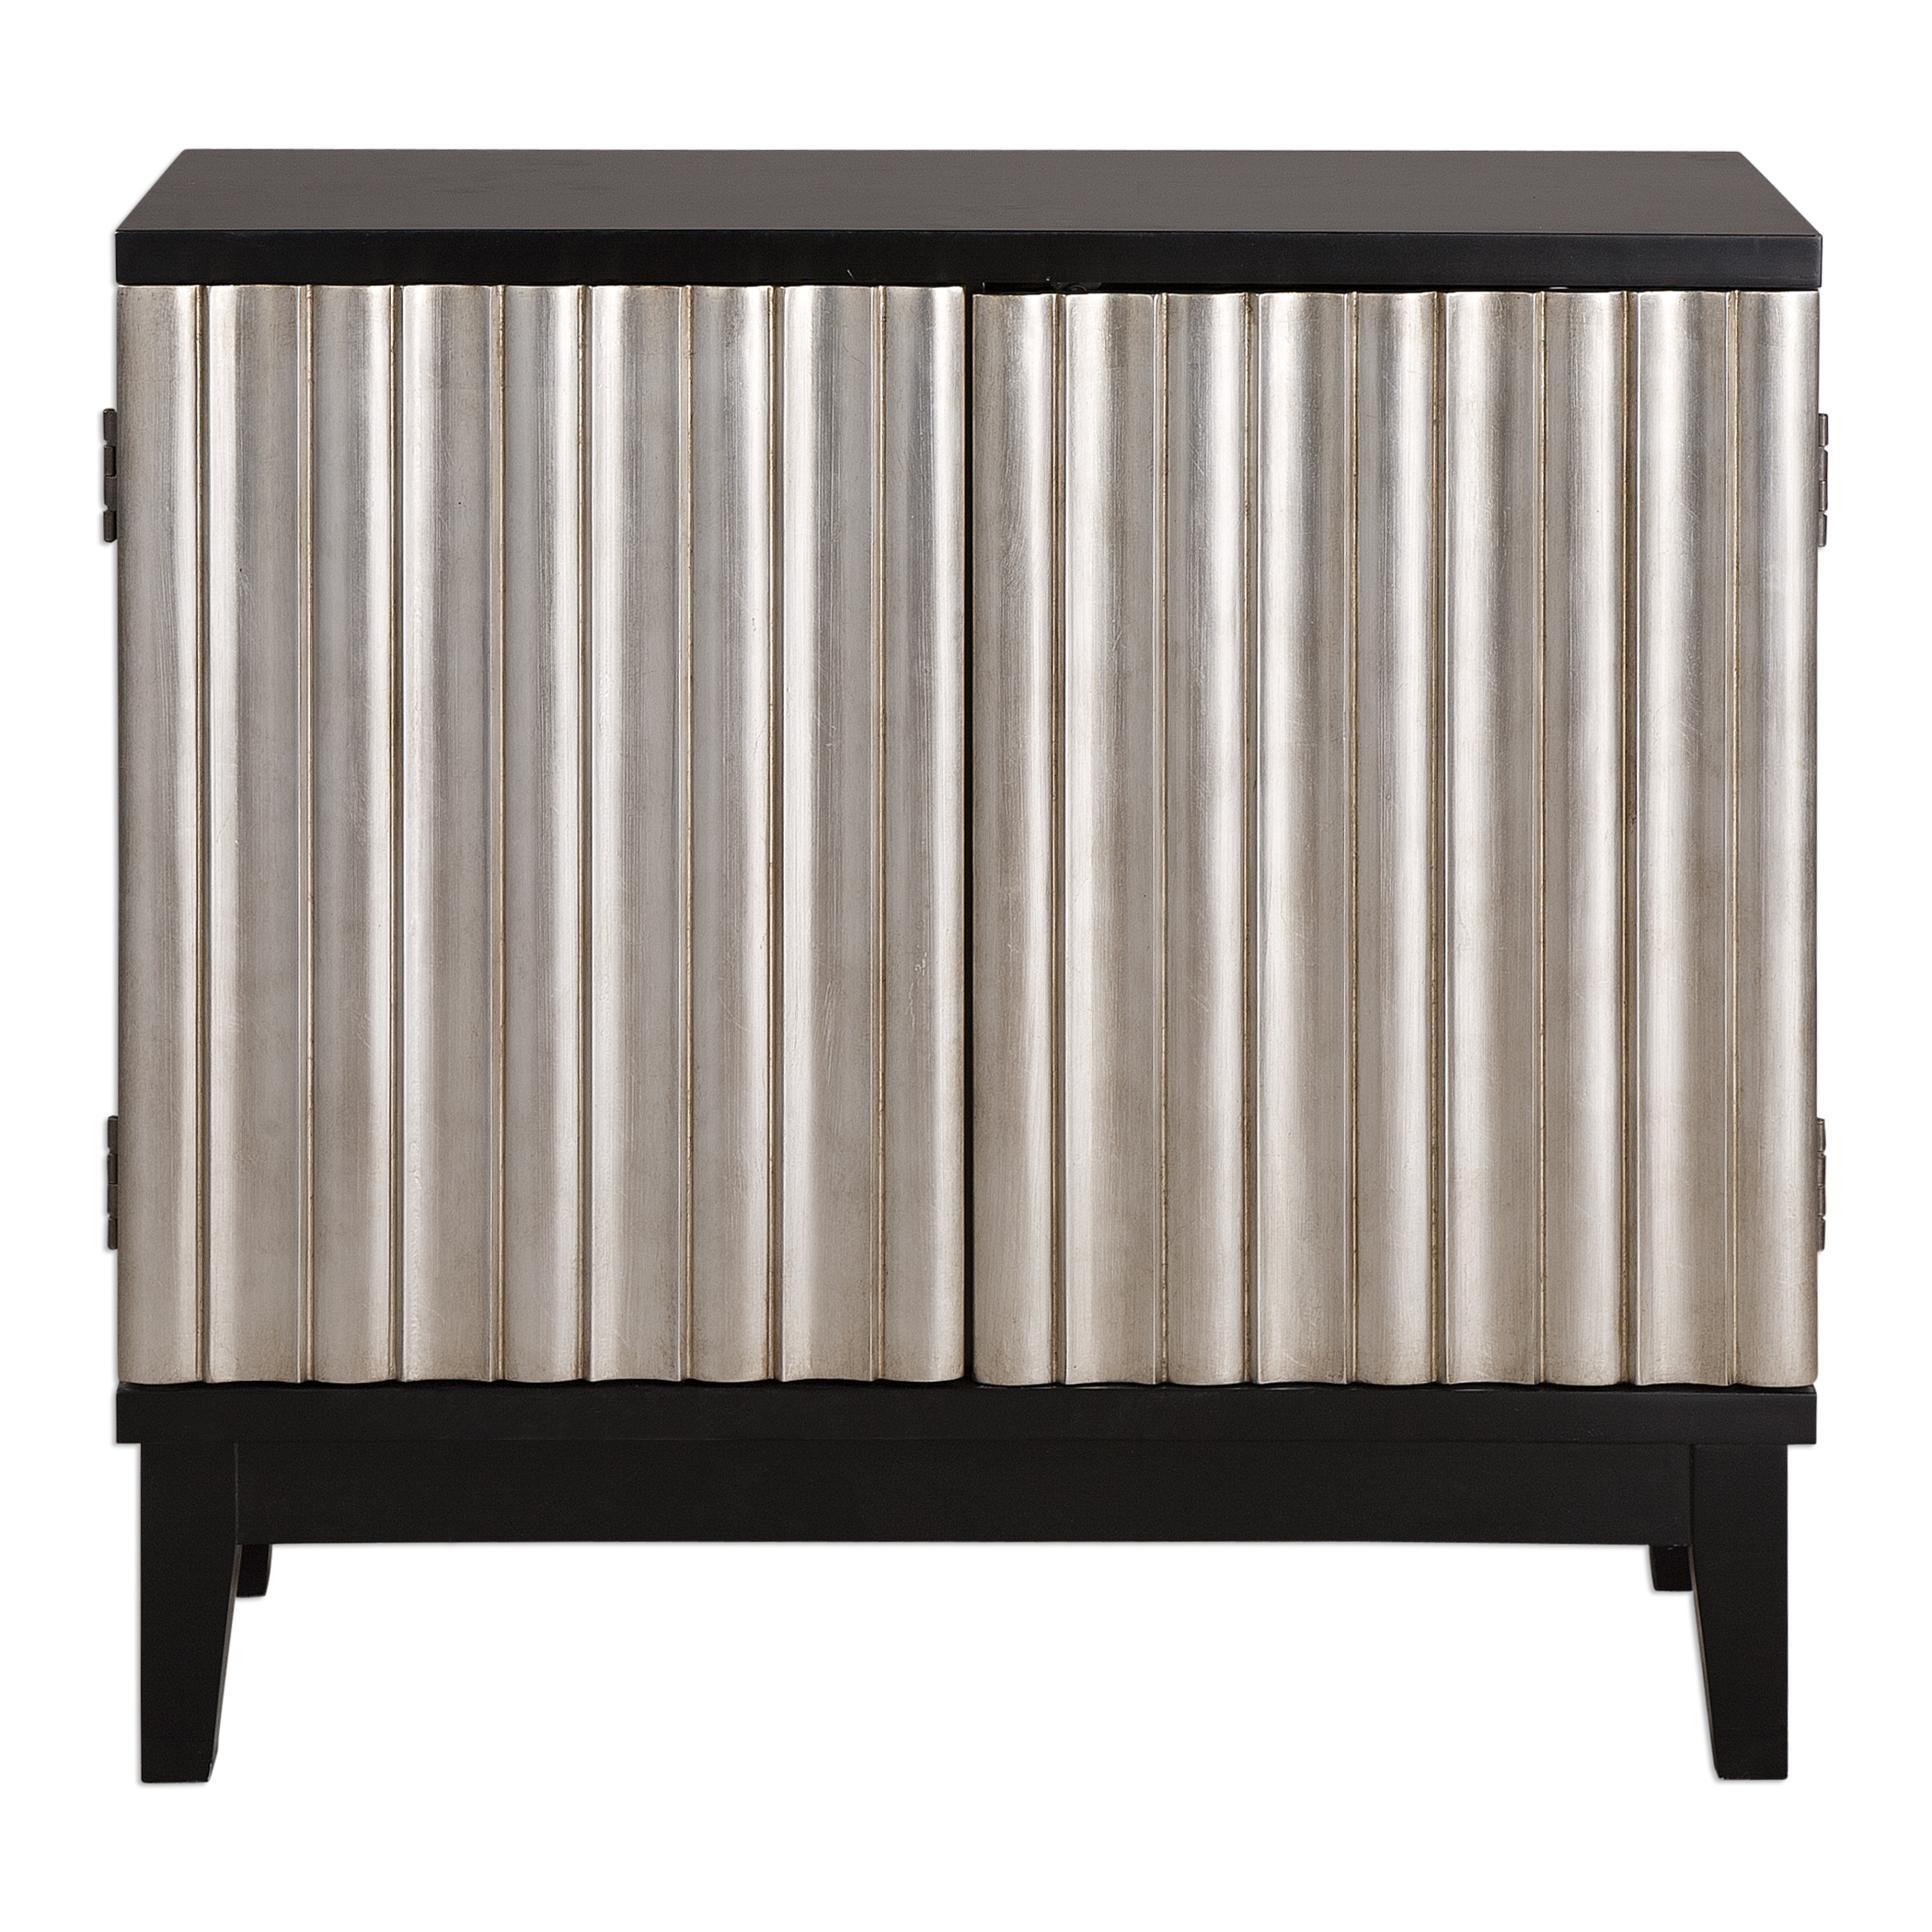 Uttermost Accent Furniture Simona Silver Console Cabinet - Item Number: 24630